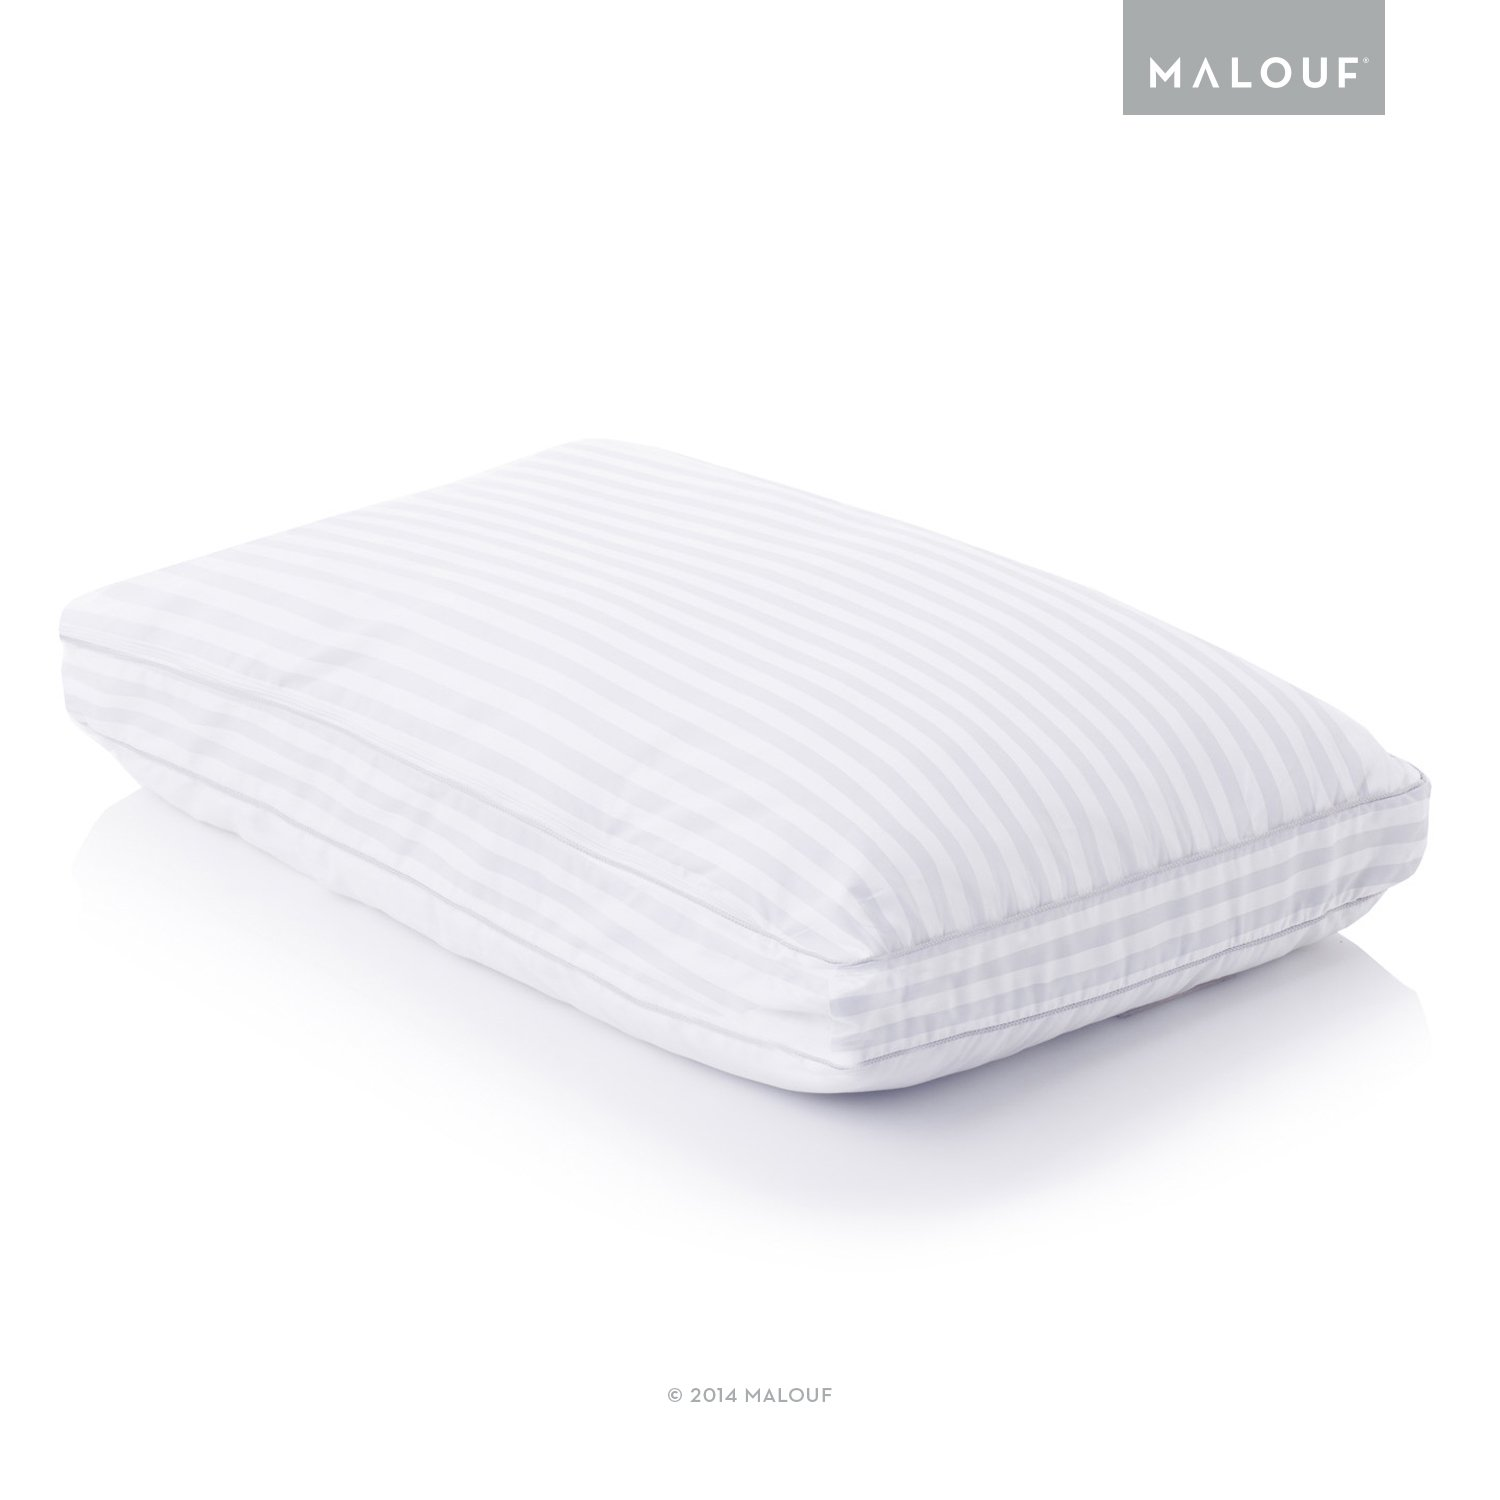 MALOUF Z by CONVOLUTION GELLED MICROFIBER with Convoluted Memory Foam Pillow - Down Alternative